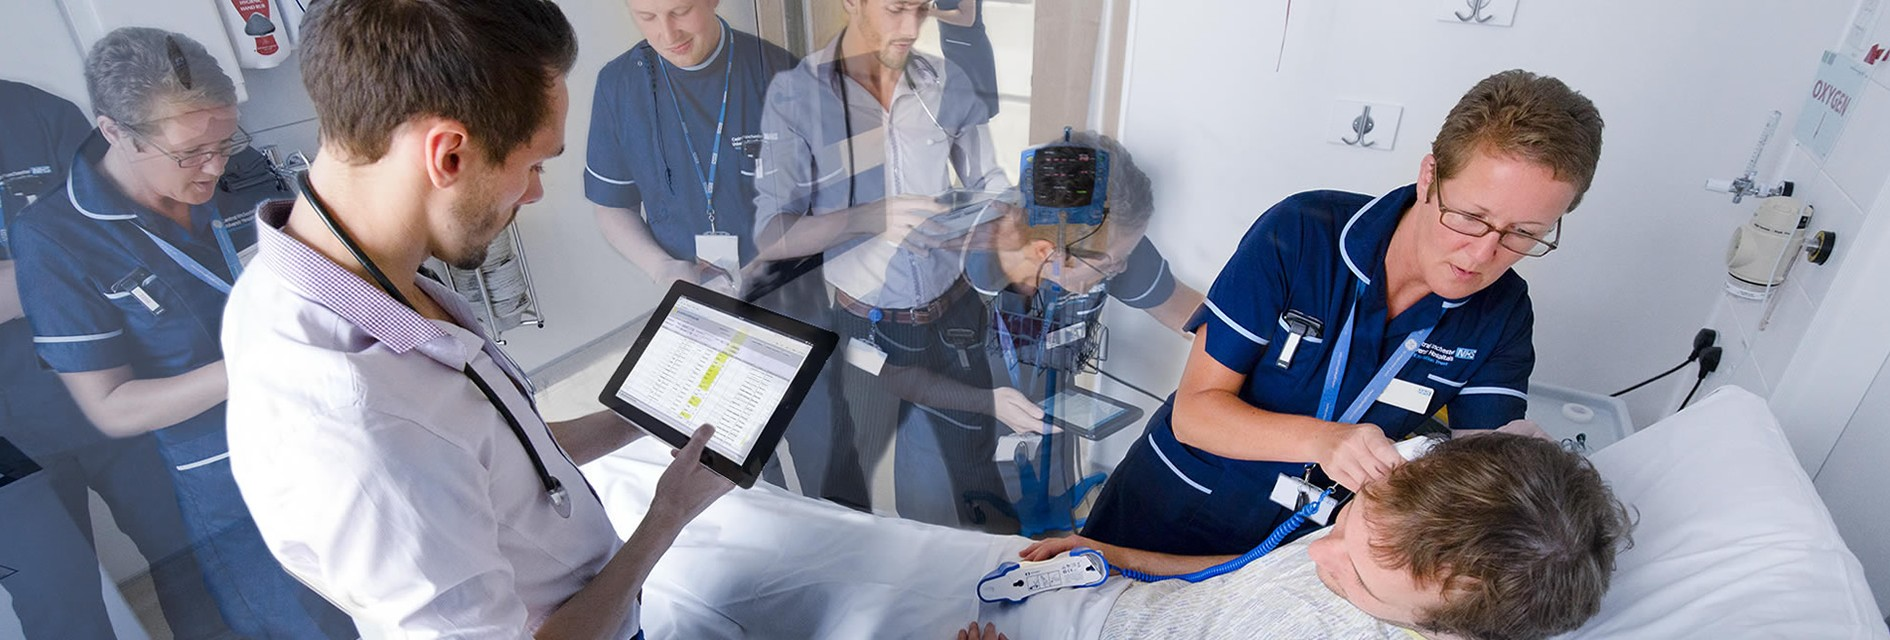 PatientTrak - Patient Management Software - Medical Software